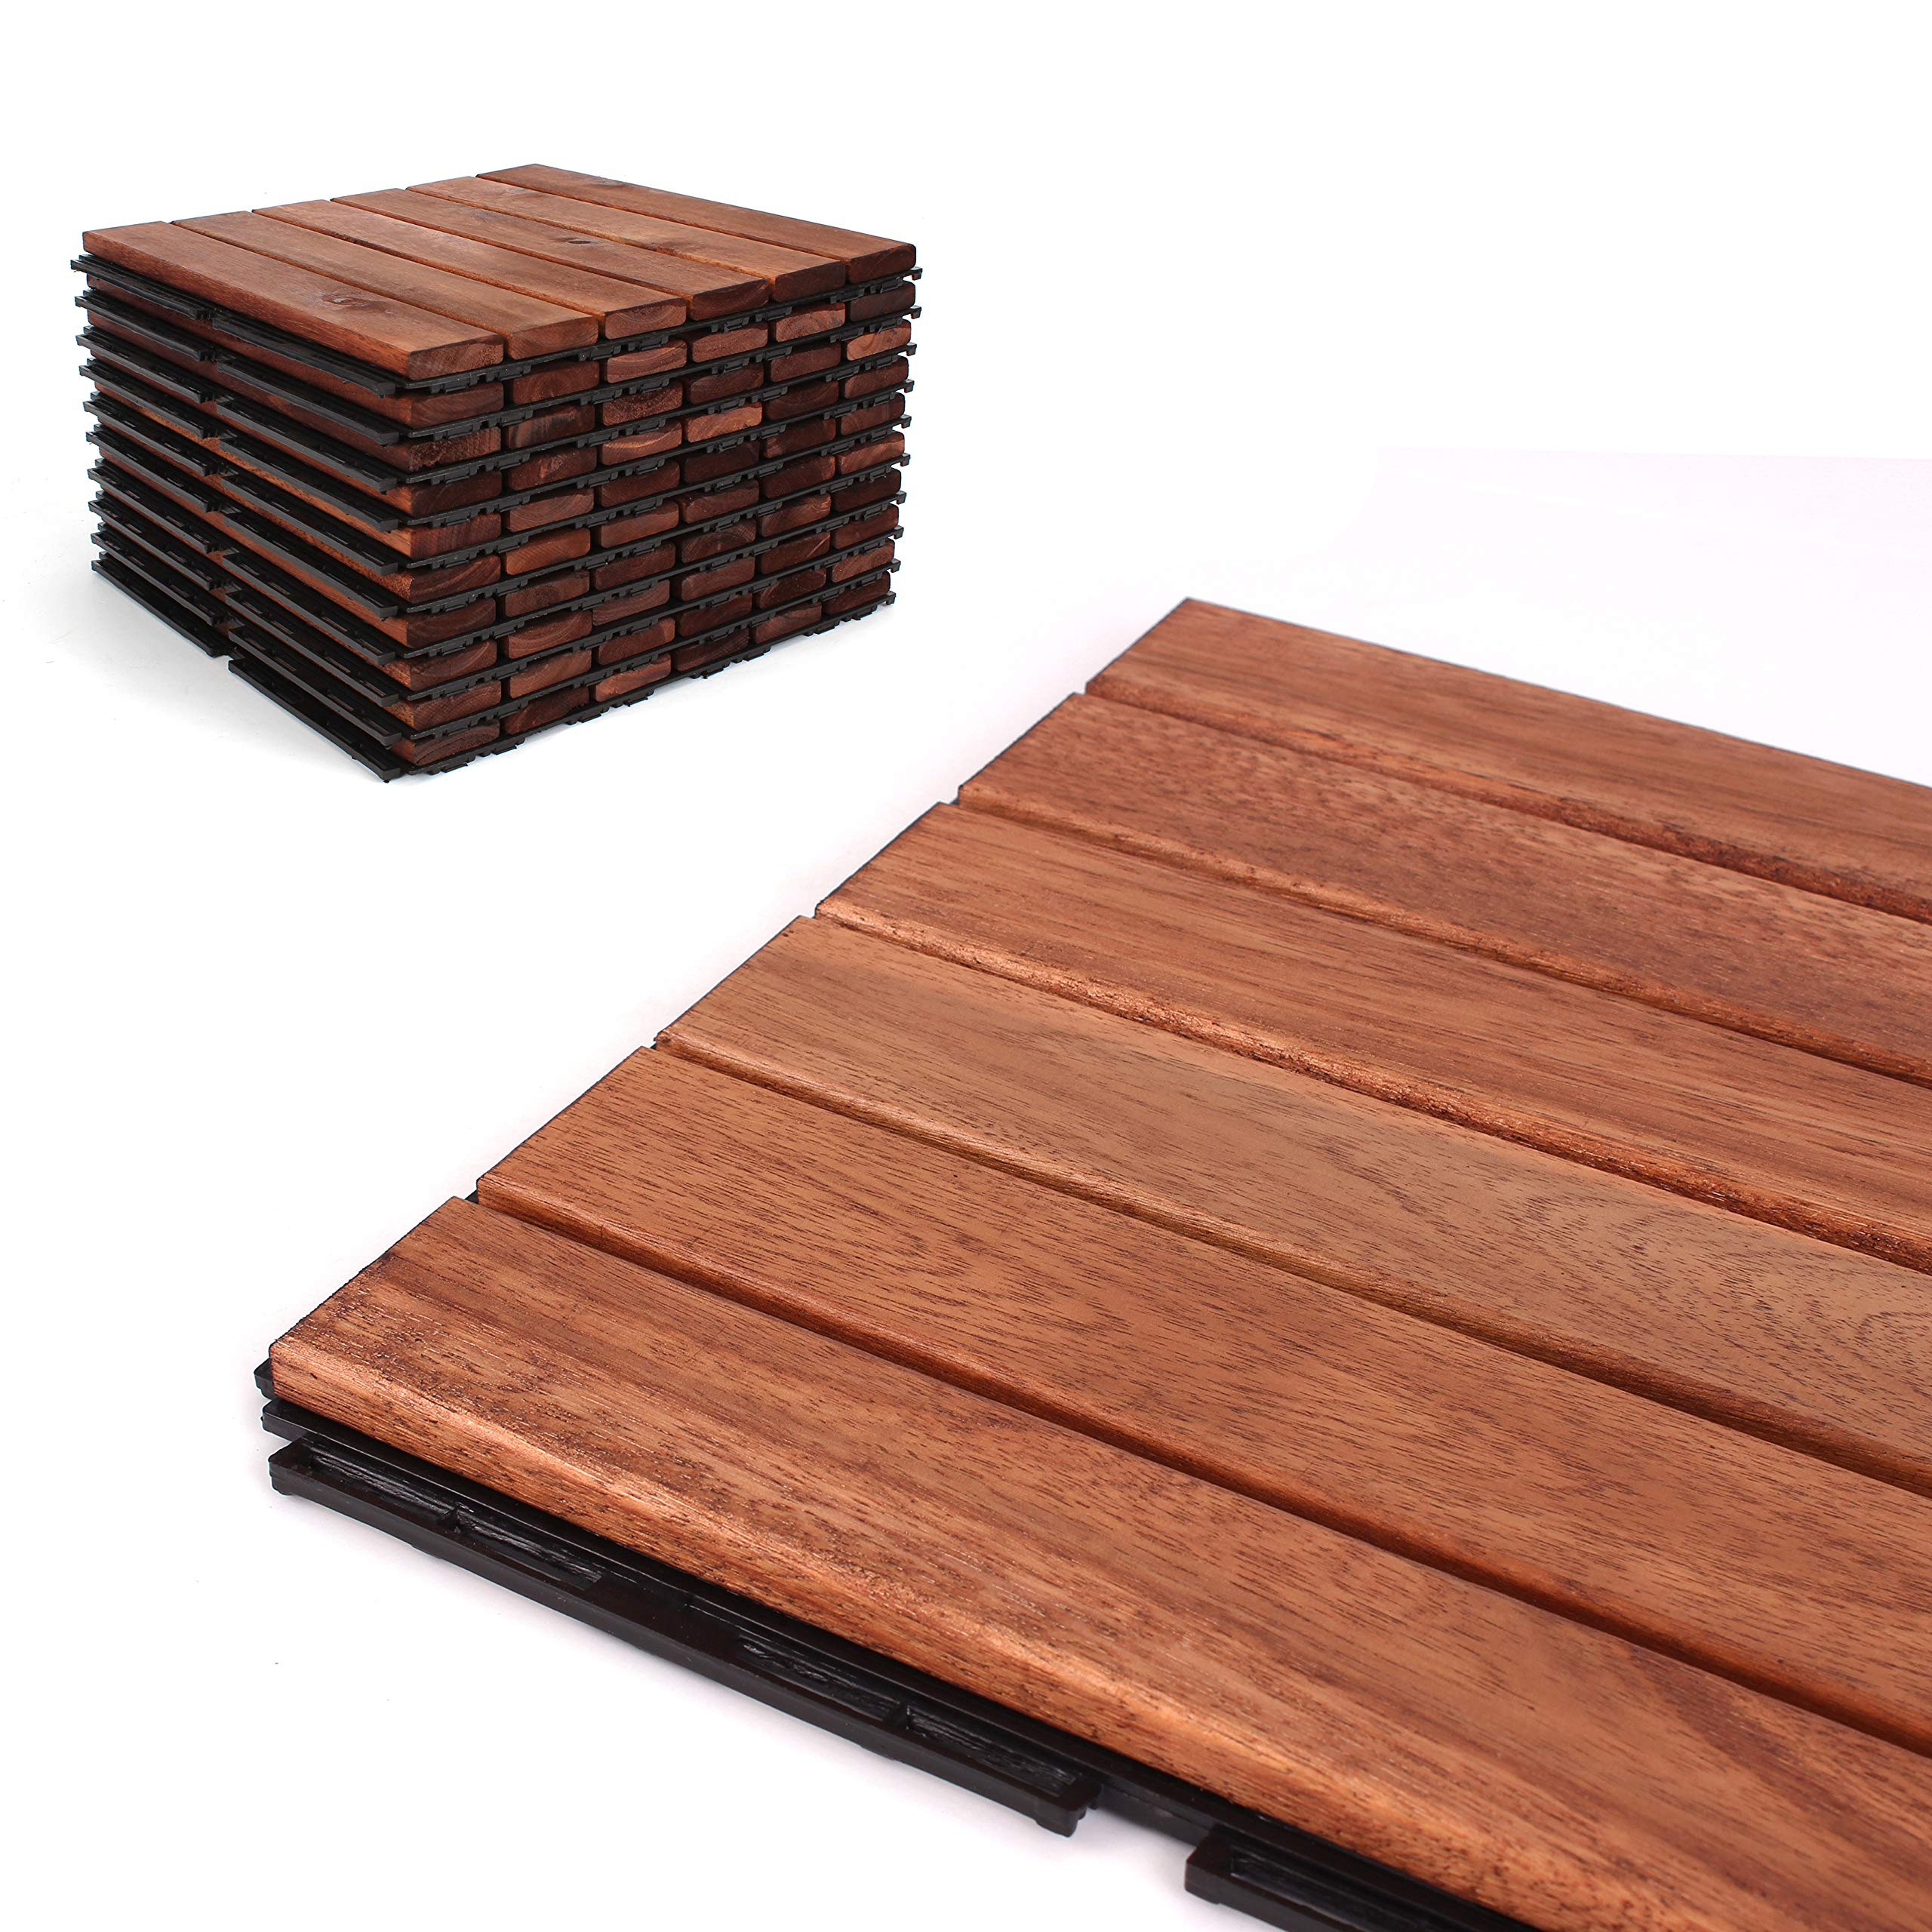 Deck Tiles - Patio Pavers - Acacia Wood Outdoor Flooring - Interlocking Patio Tiles - 12''x12'' (10 Pack) - Oiled Acacia Finish - Straight Pattern Decking